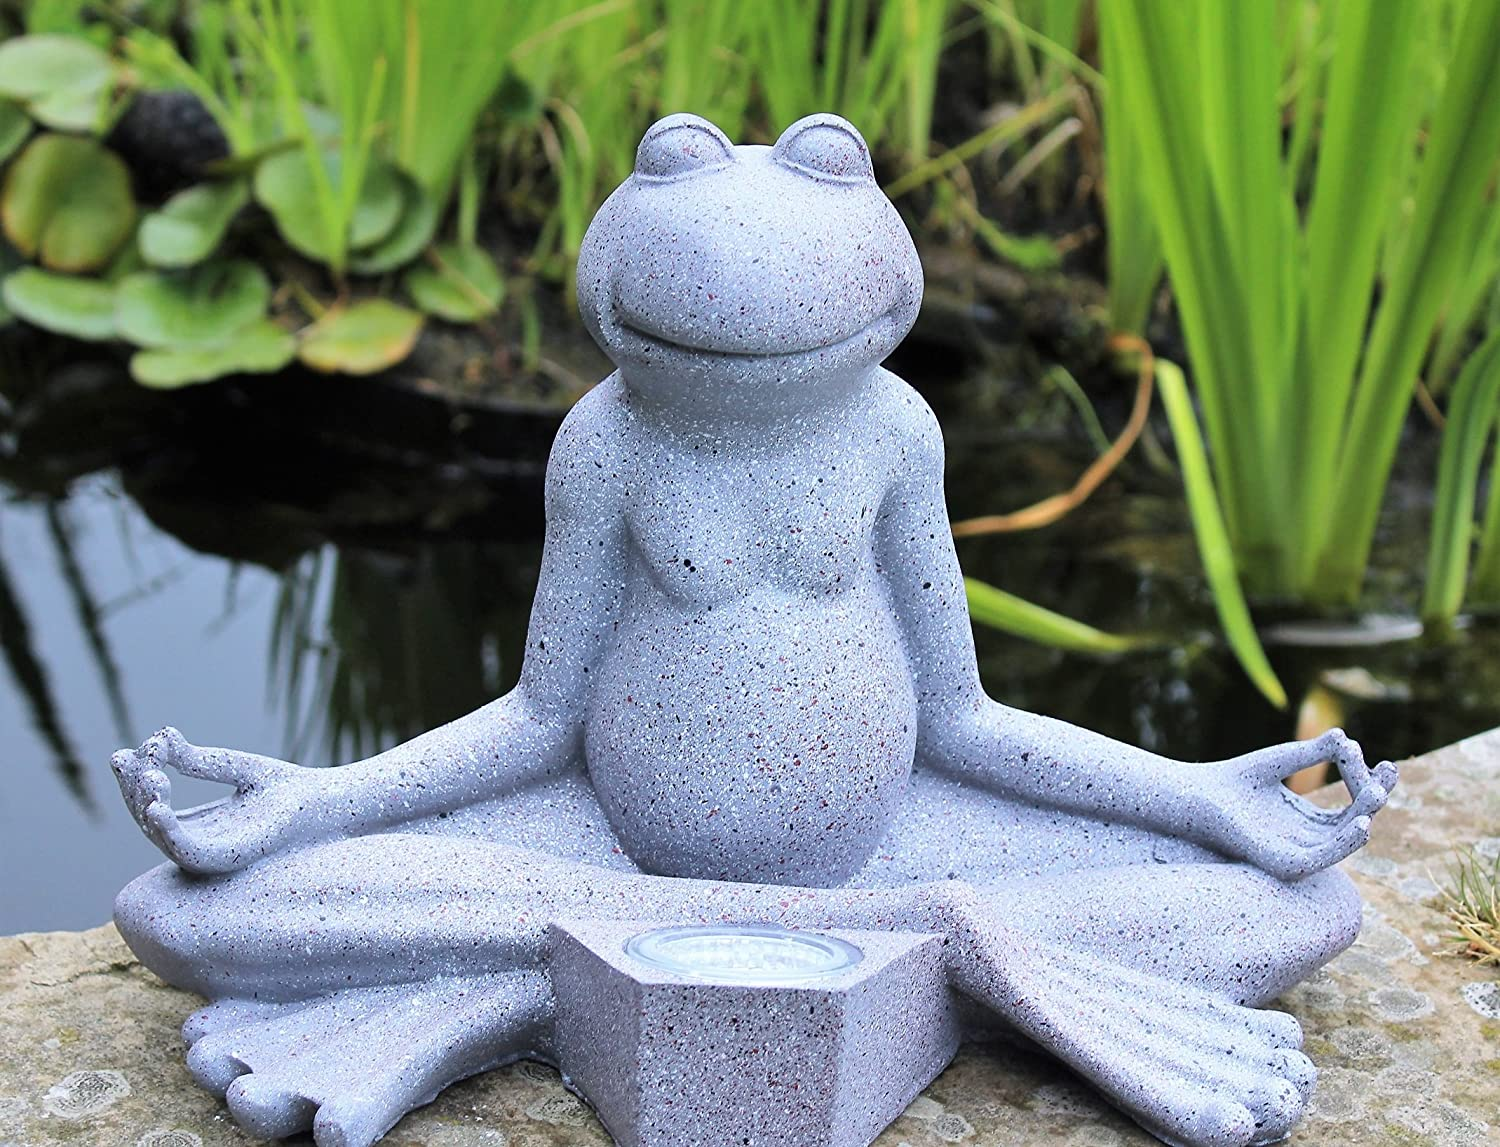 HOME HUT Yoga Frog Garden Ornament Decor Solar outdoor Home and Garden Products Ltd